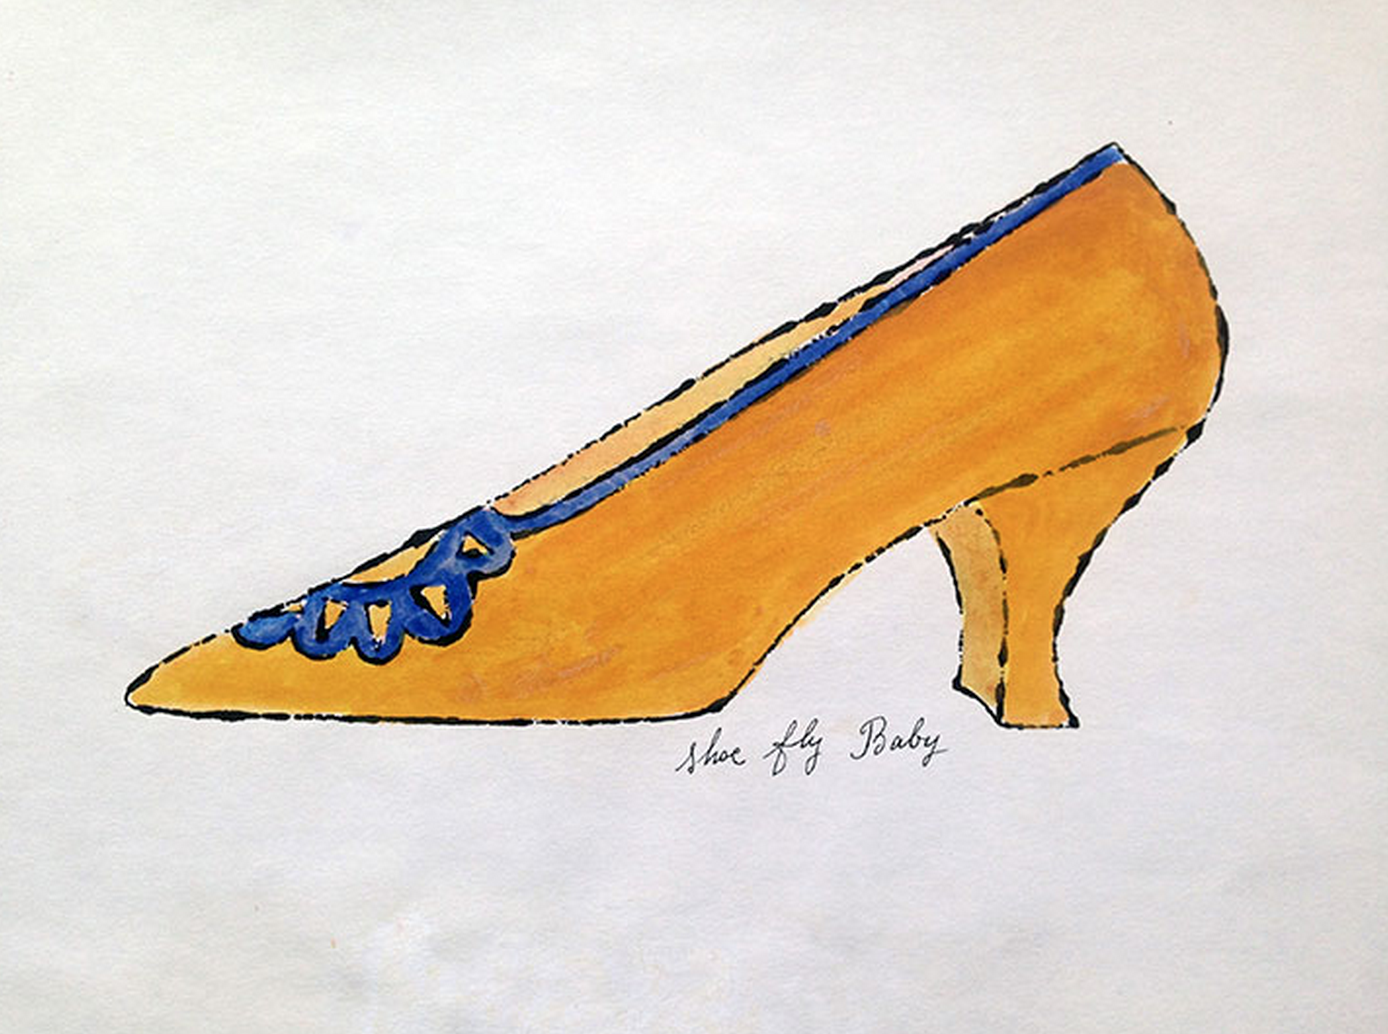 Shoe Fly Baby – Shoe Portfolio by Andy Warhol